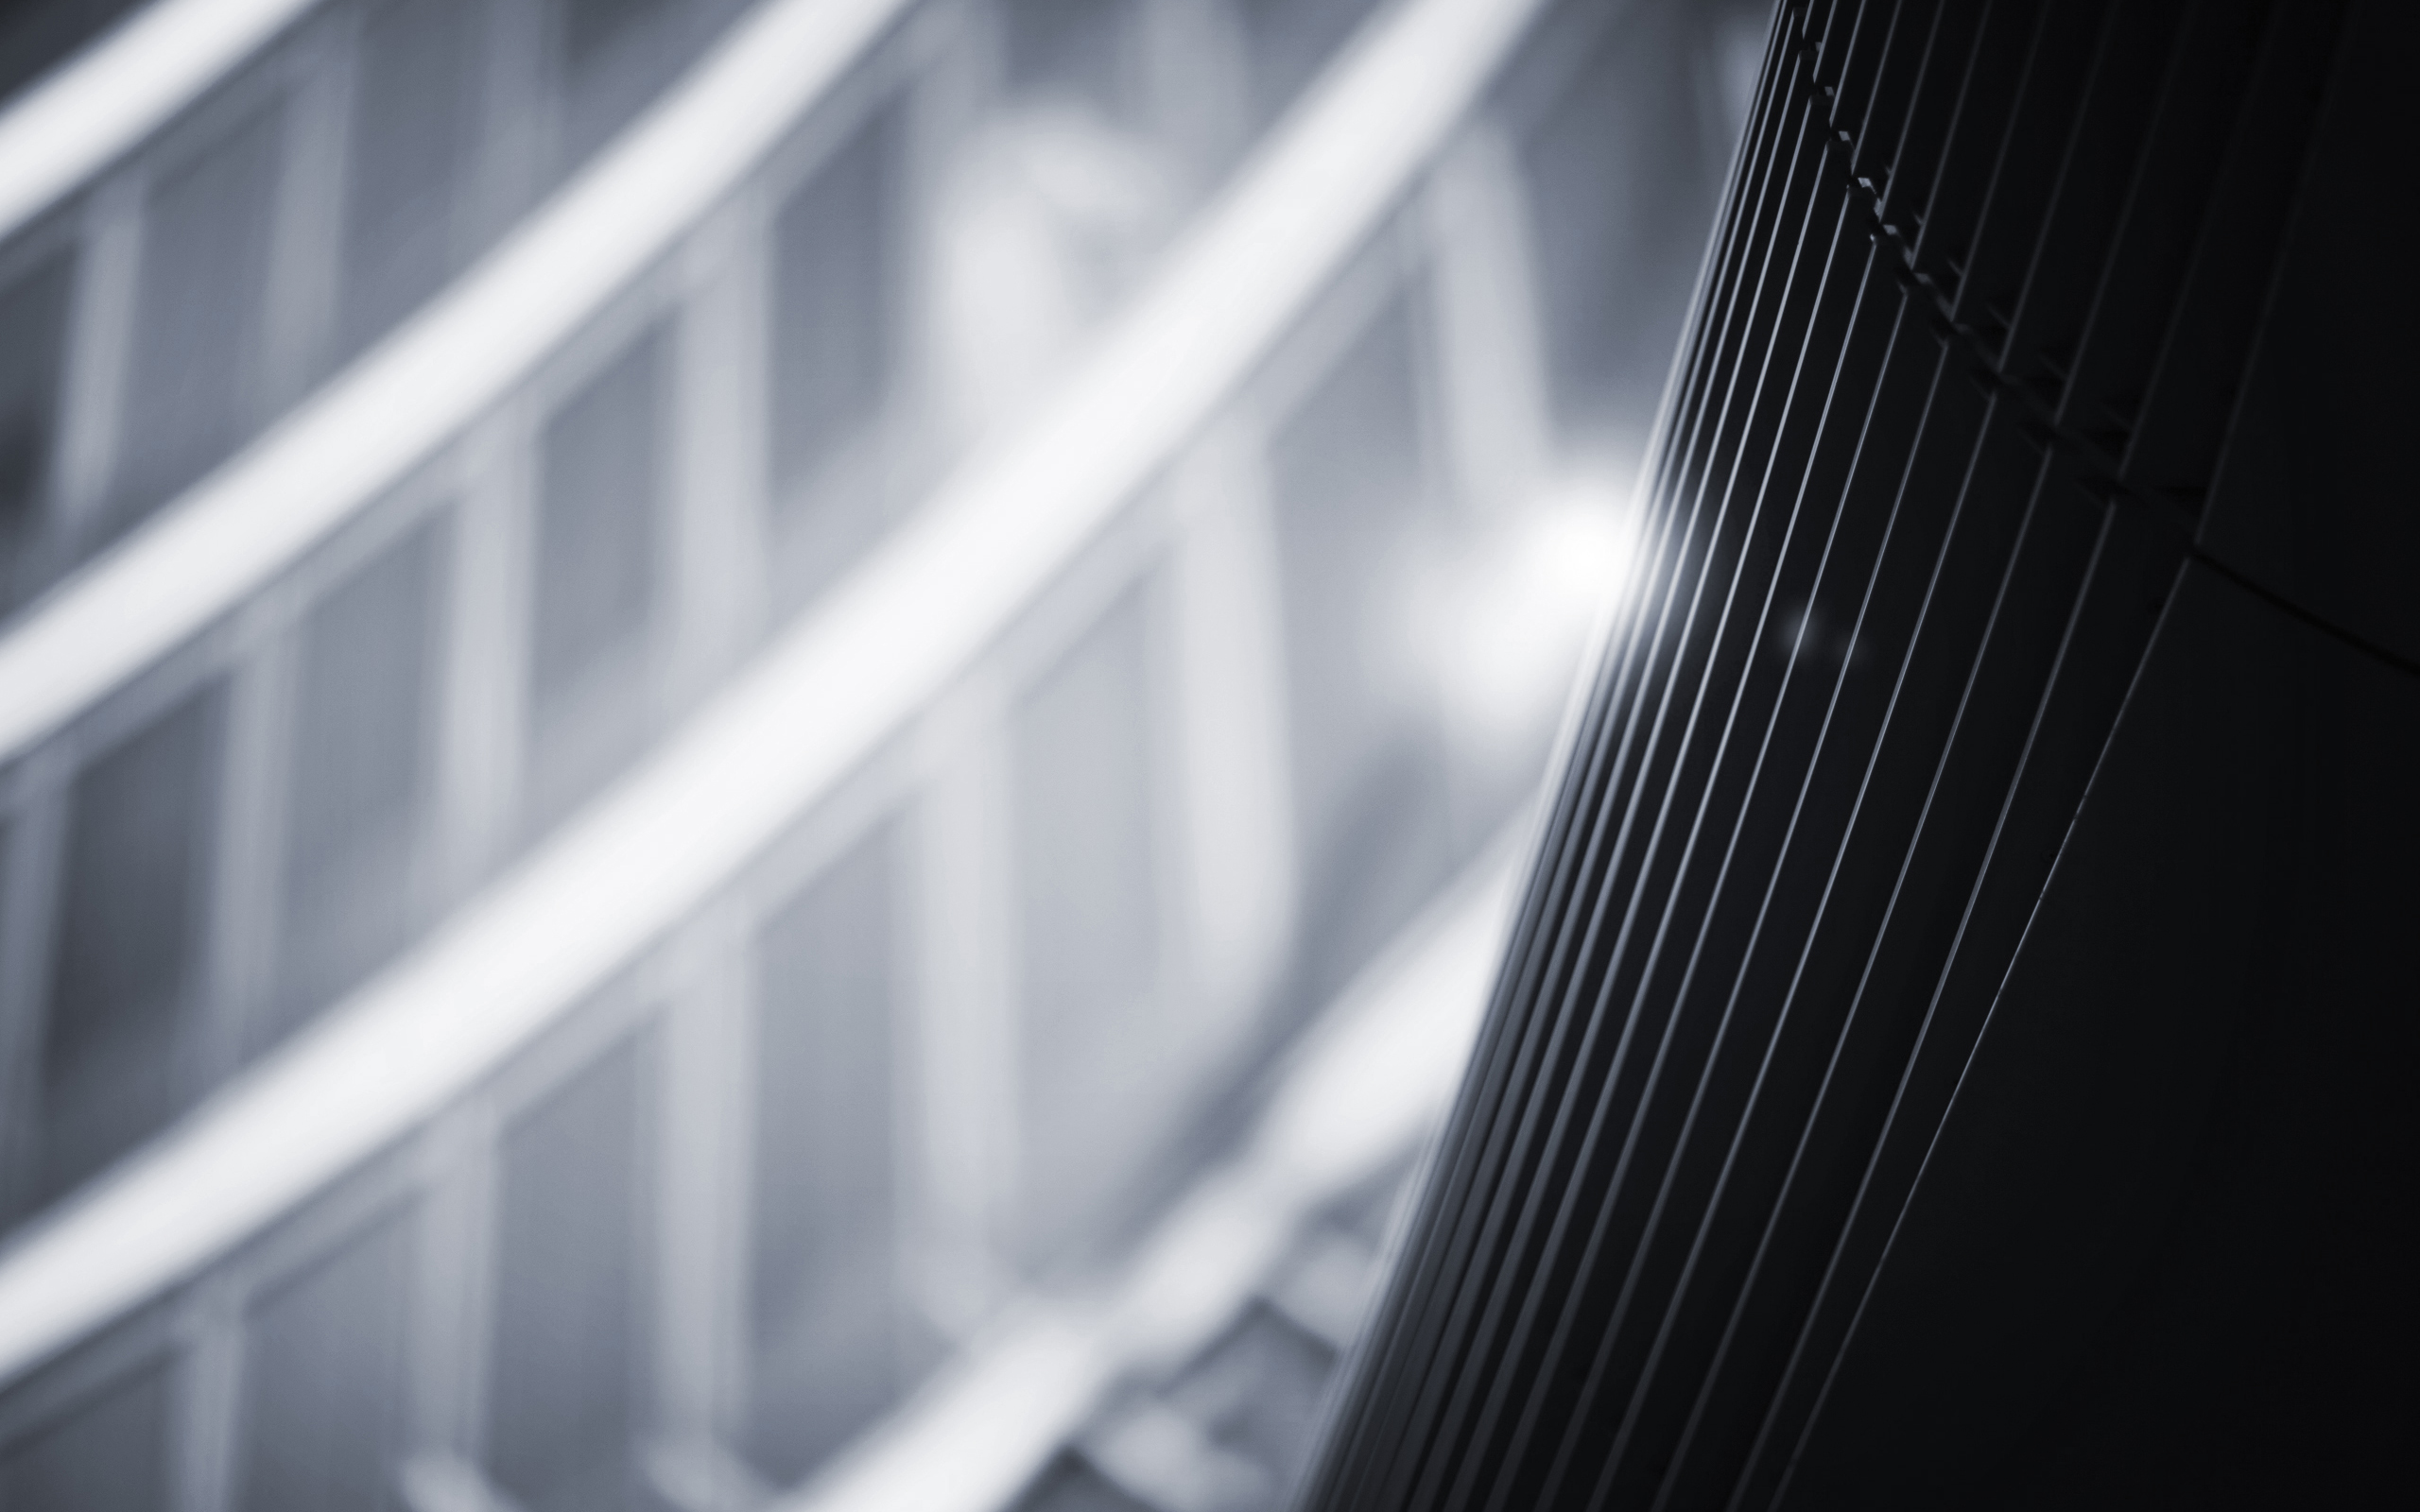 Between the Lines, architecture, building, out of focus, lines, abstract, black and white